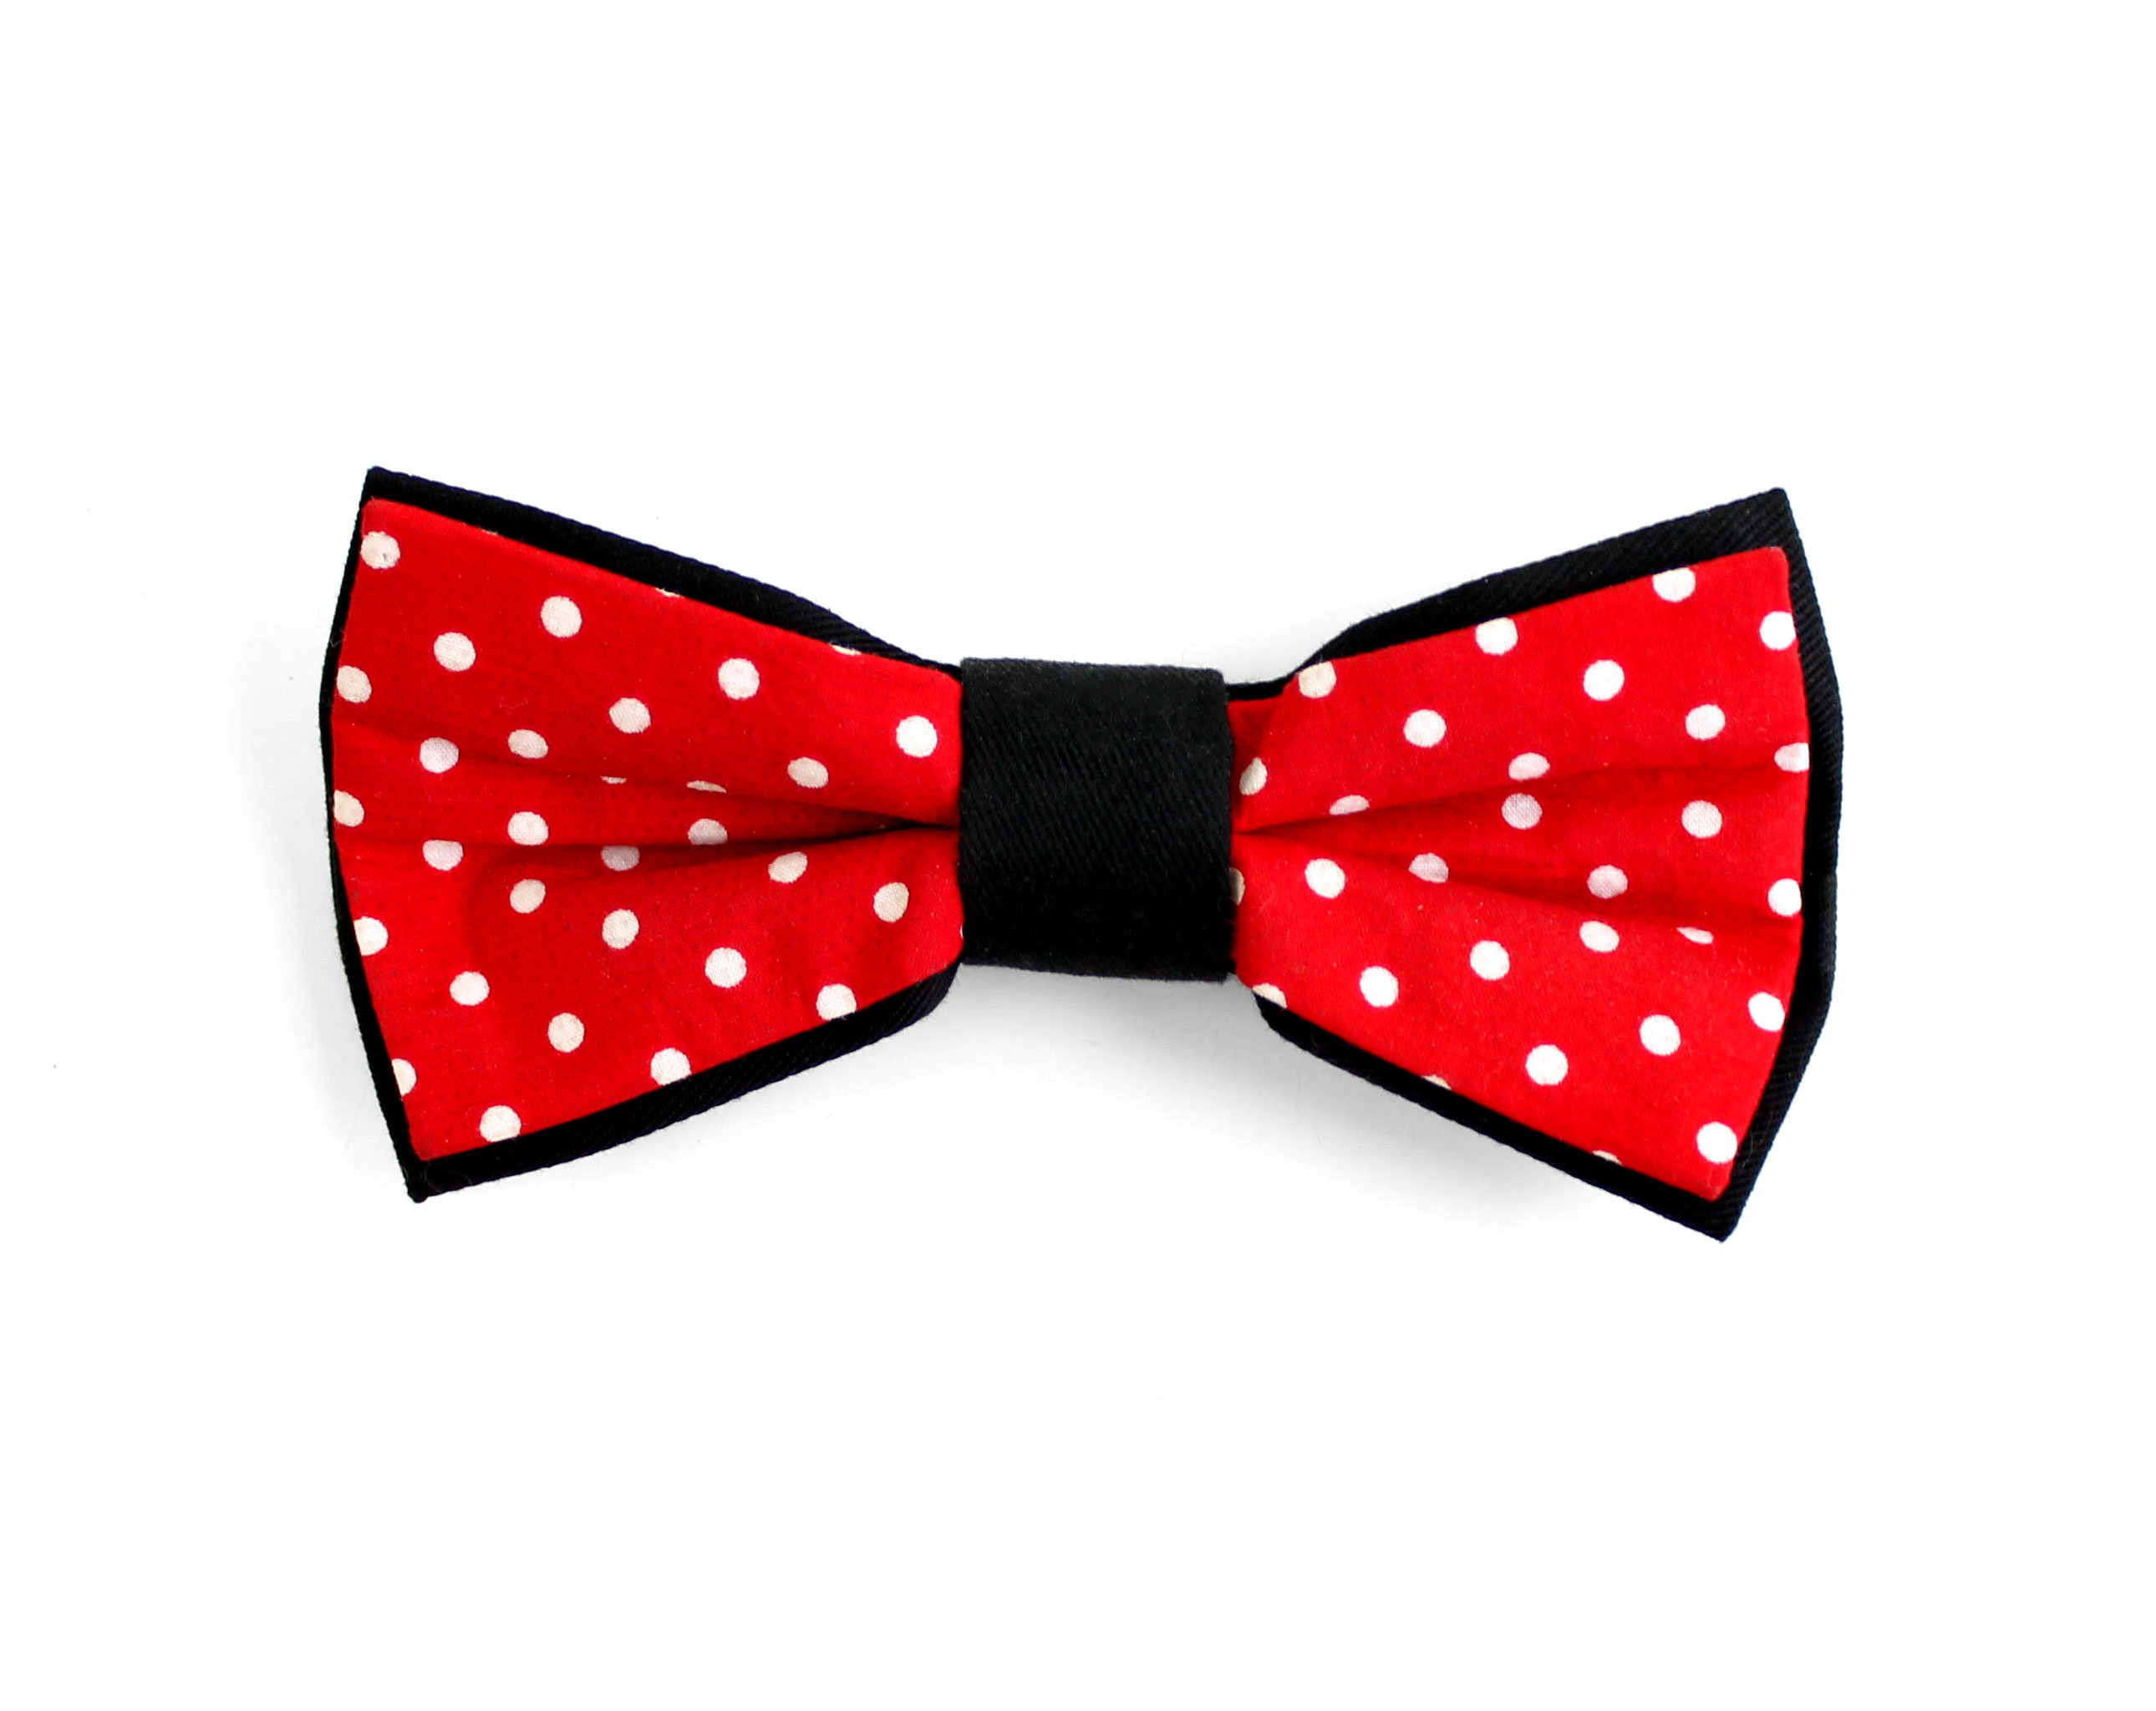 56220cd32cd Pet Bow Tie Content Gallery   Reversible bow ties for cats and dogs.